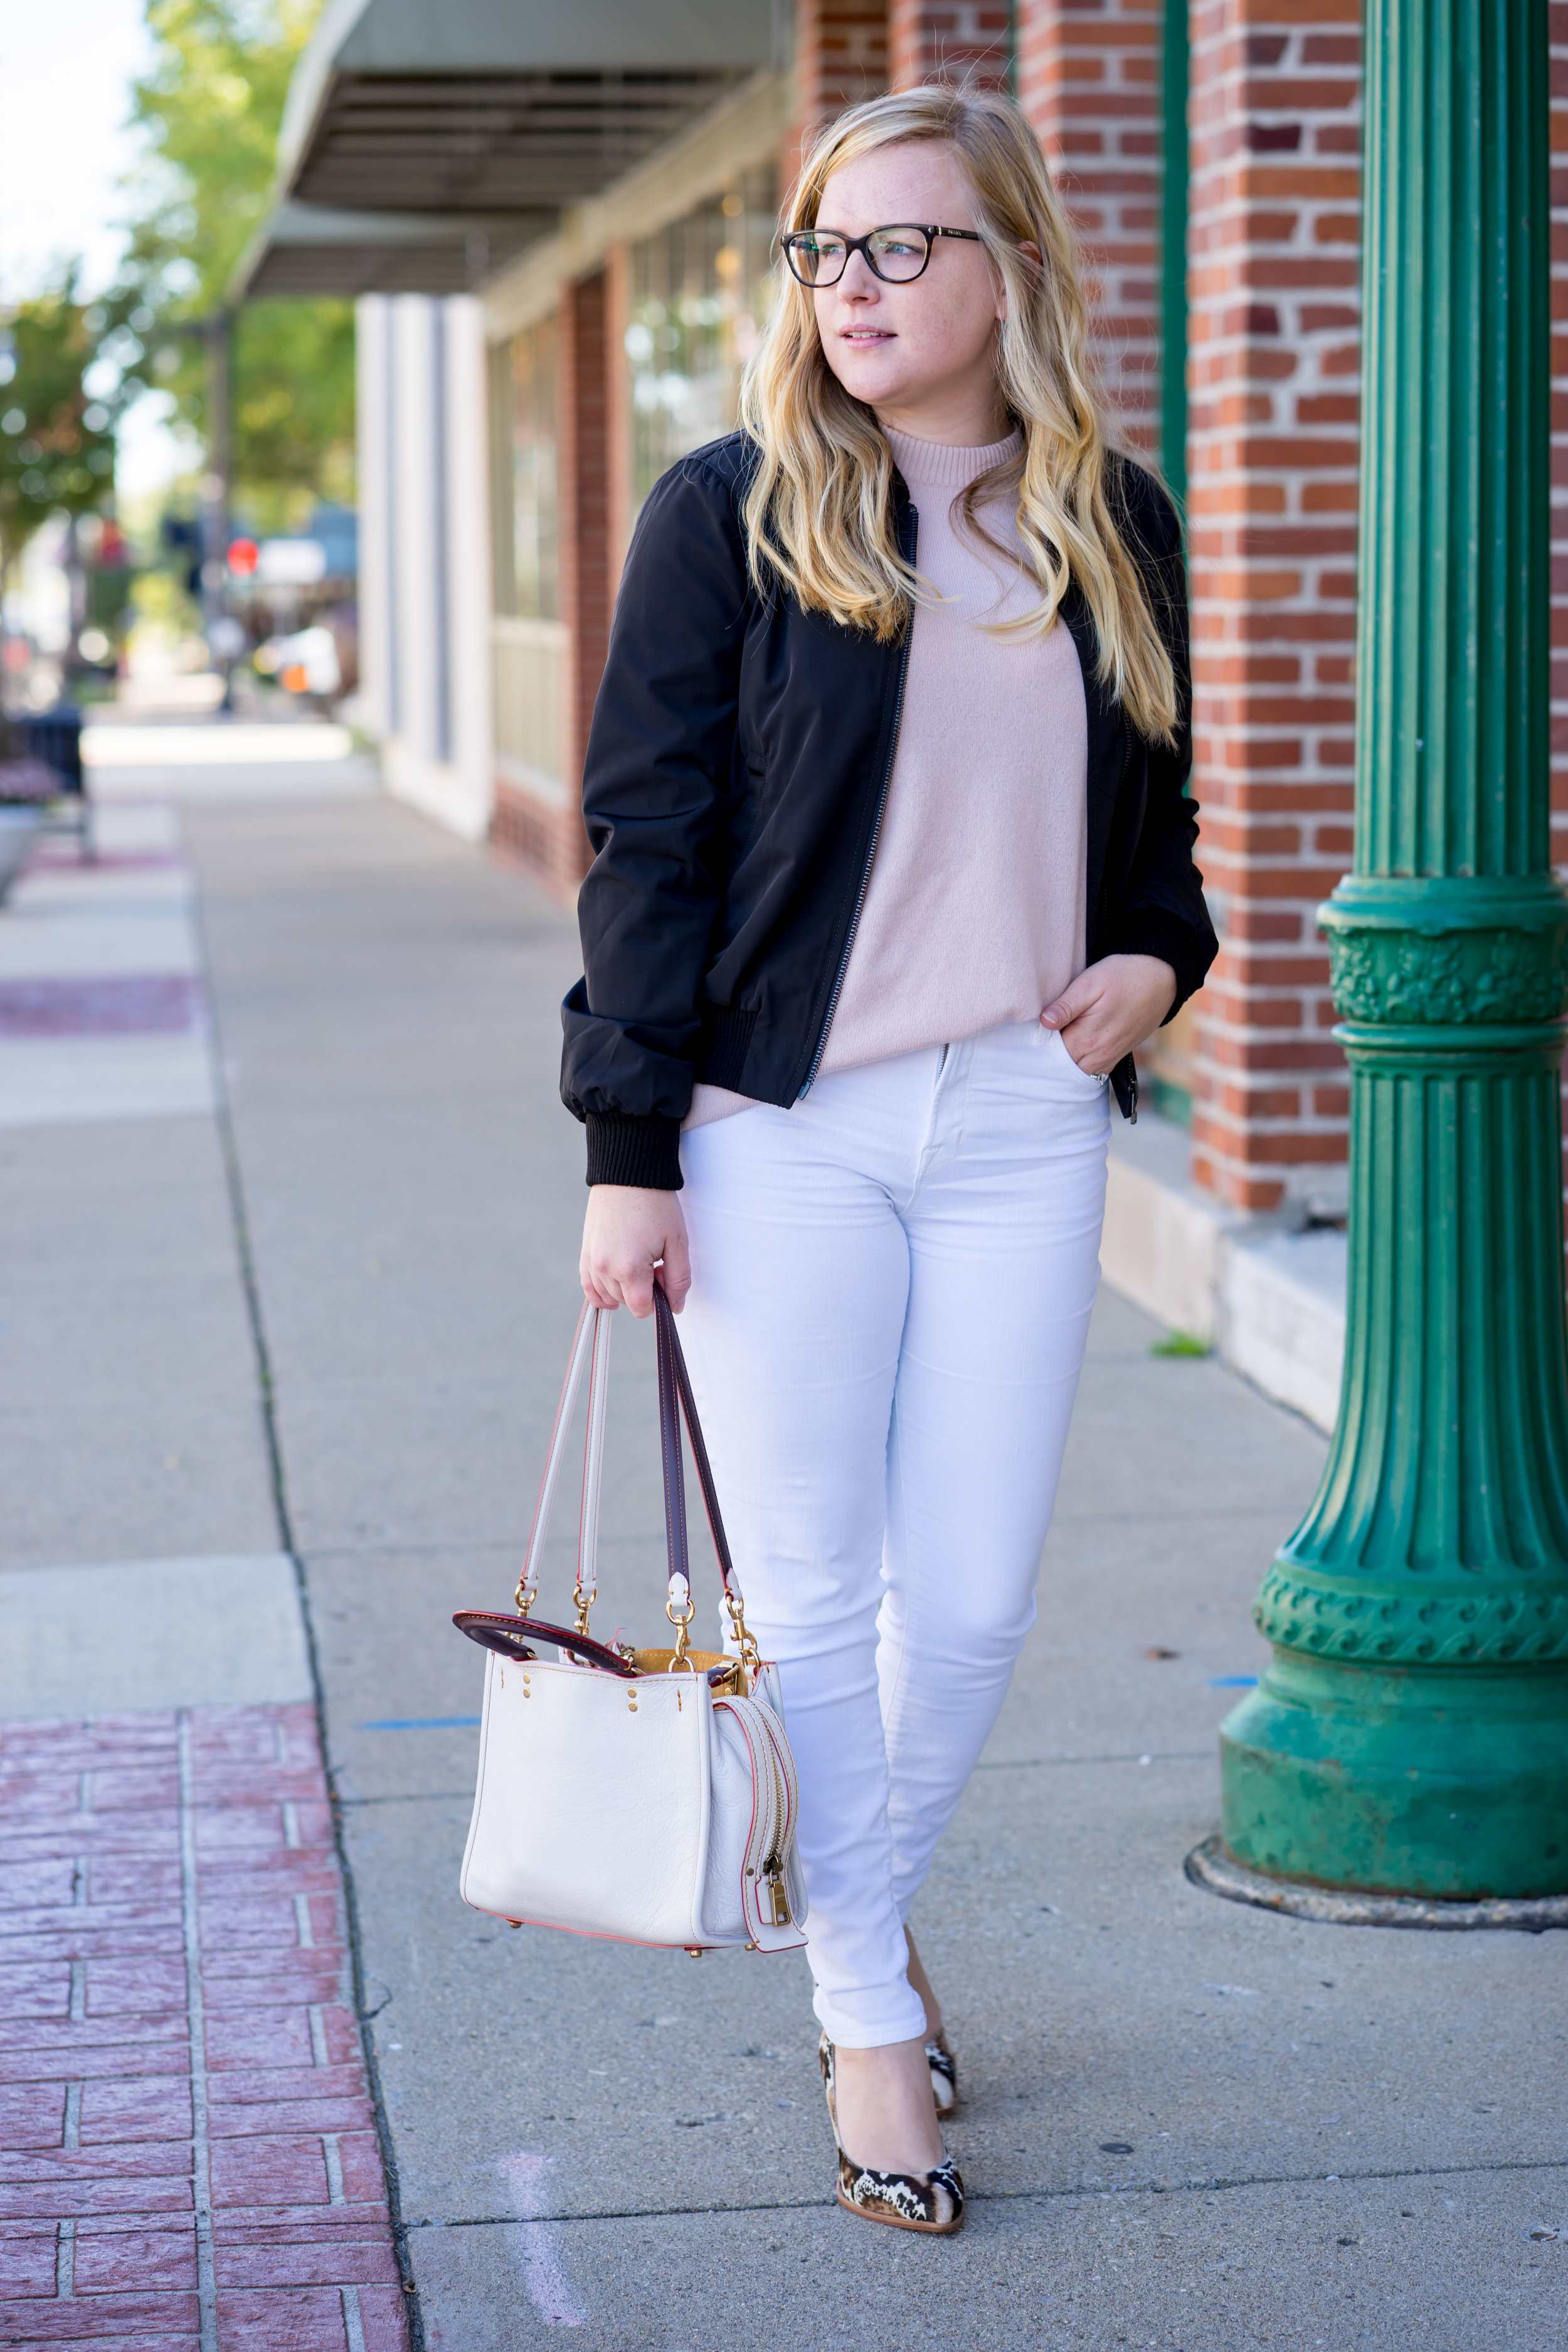 Maggie a la Mode - Madewell Side-Zip Bomber Jacket, Equipment Bryce Cashmere Sweater, J Brand High Rise Alana Crop White Jeans, Loeffler Randall Remy Phython Block Heels, Coach Rogue 25